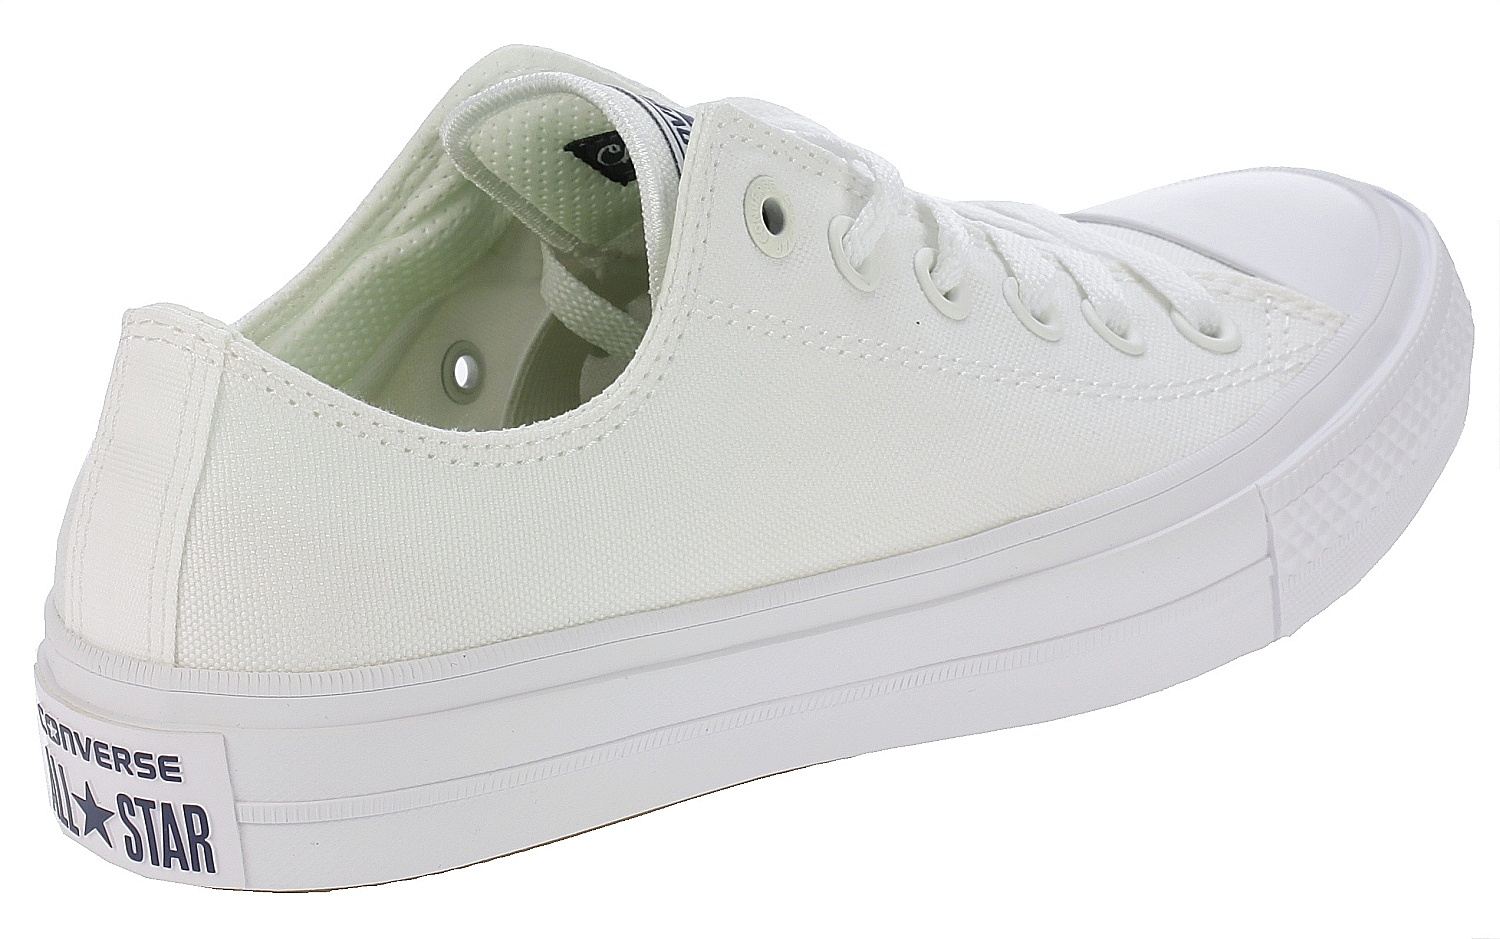 390851dddc01 ... boty Converse Chuck Taylor All Star II Low Top OX - 150154 White White  ...